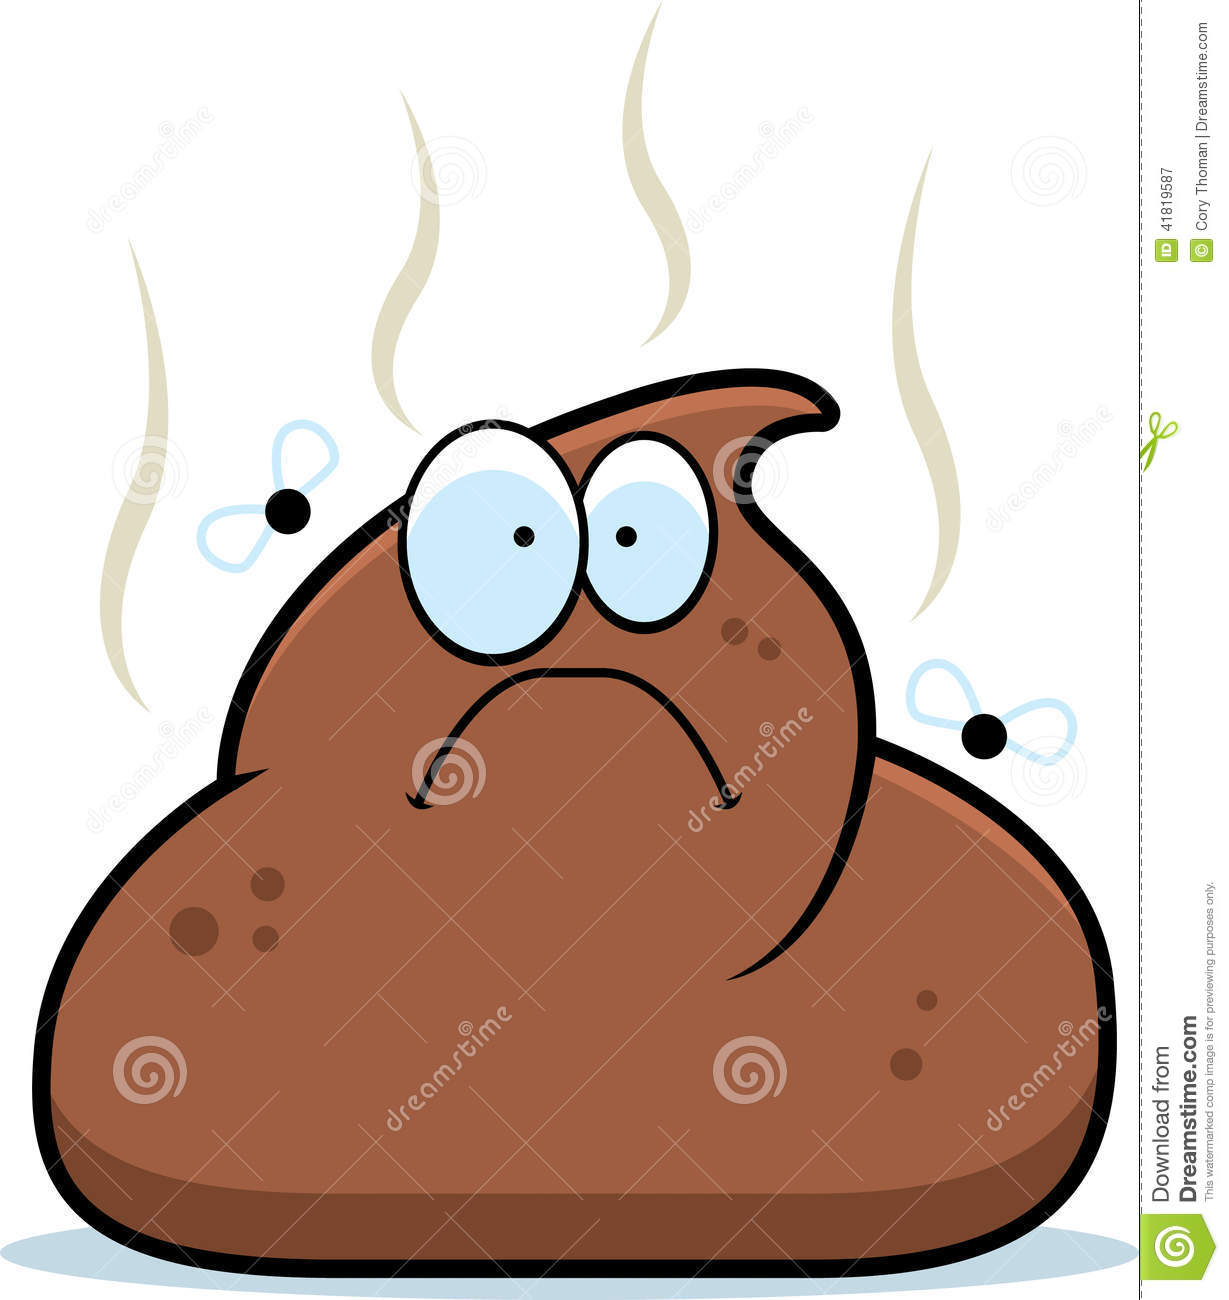 Cartoon Poop Stock Illustrations u2013 1,195 Cartoon Poop Stock Illustrations,  Vectors u0026 Clipart - Dreamstime